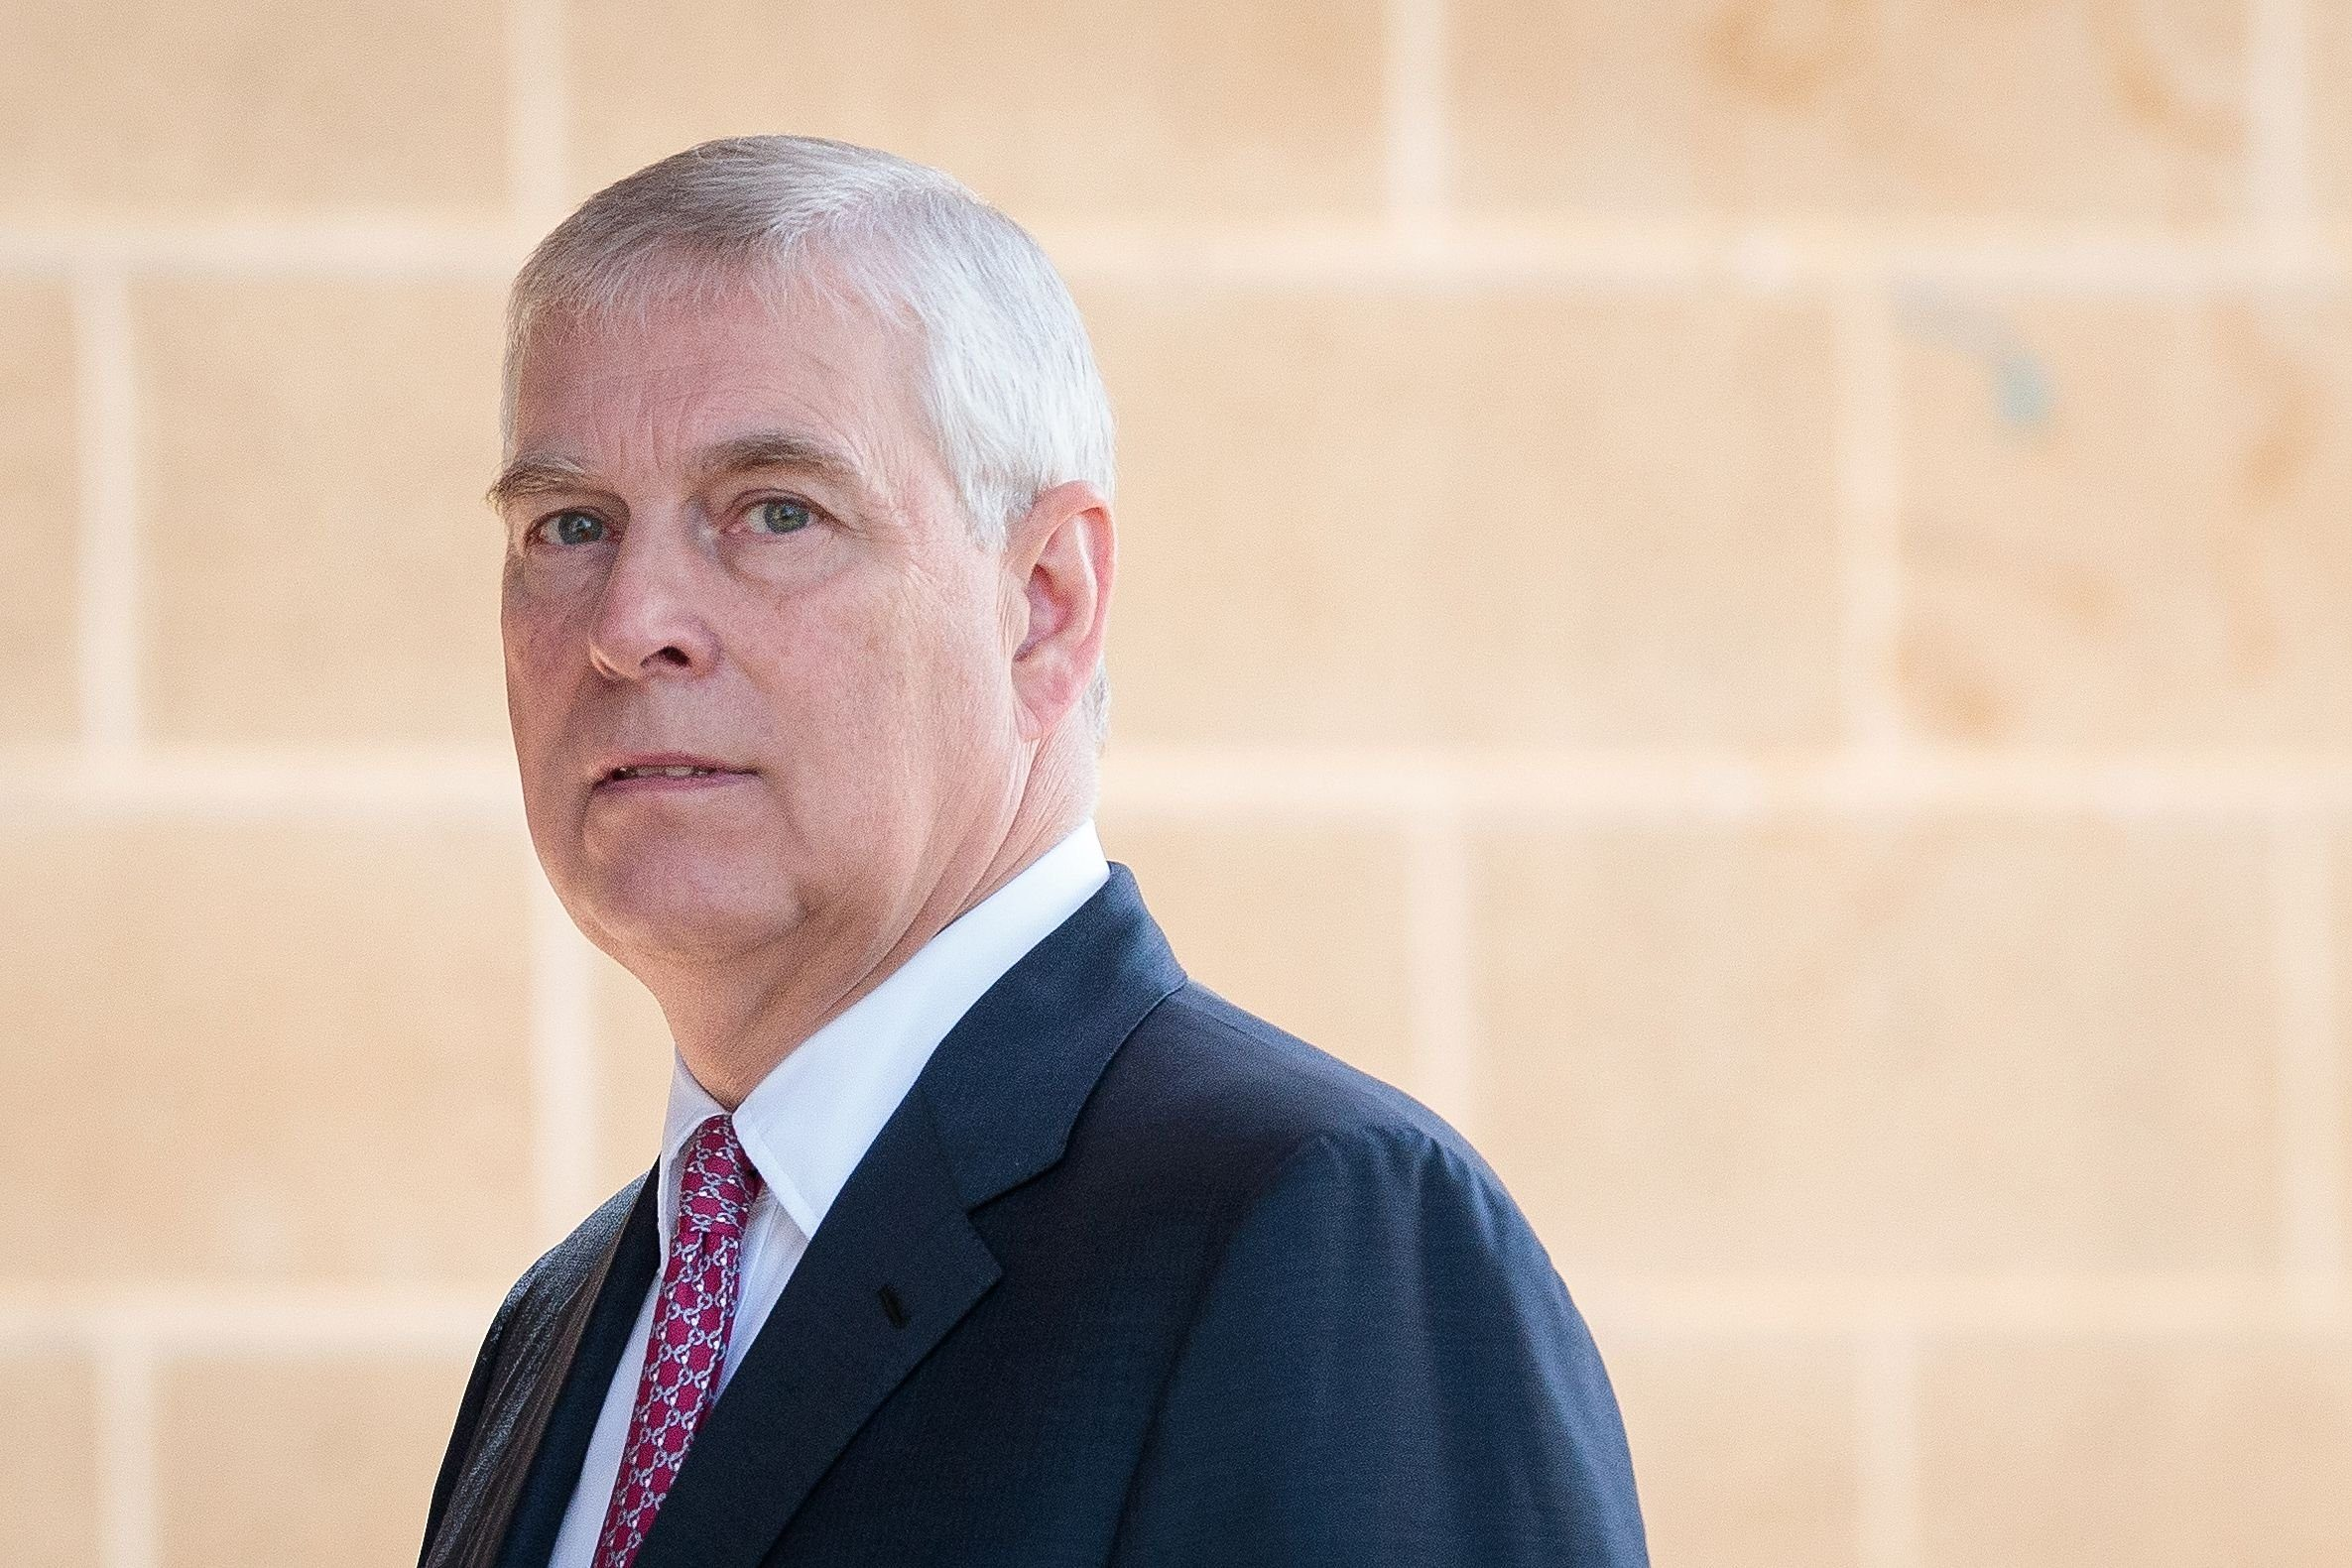 Britain's Prince Andrew, Duke of York arriving at Murdoch University in Perth, Western Australia, Australia, 02 October 2019. According to reports, Prince Andrew is in Australia on a working visit. 2 Oct 2019